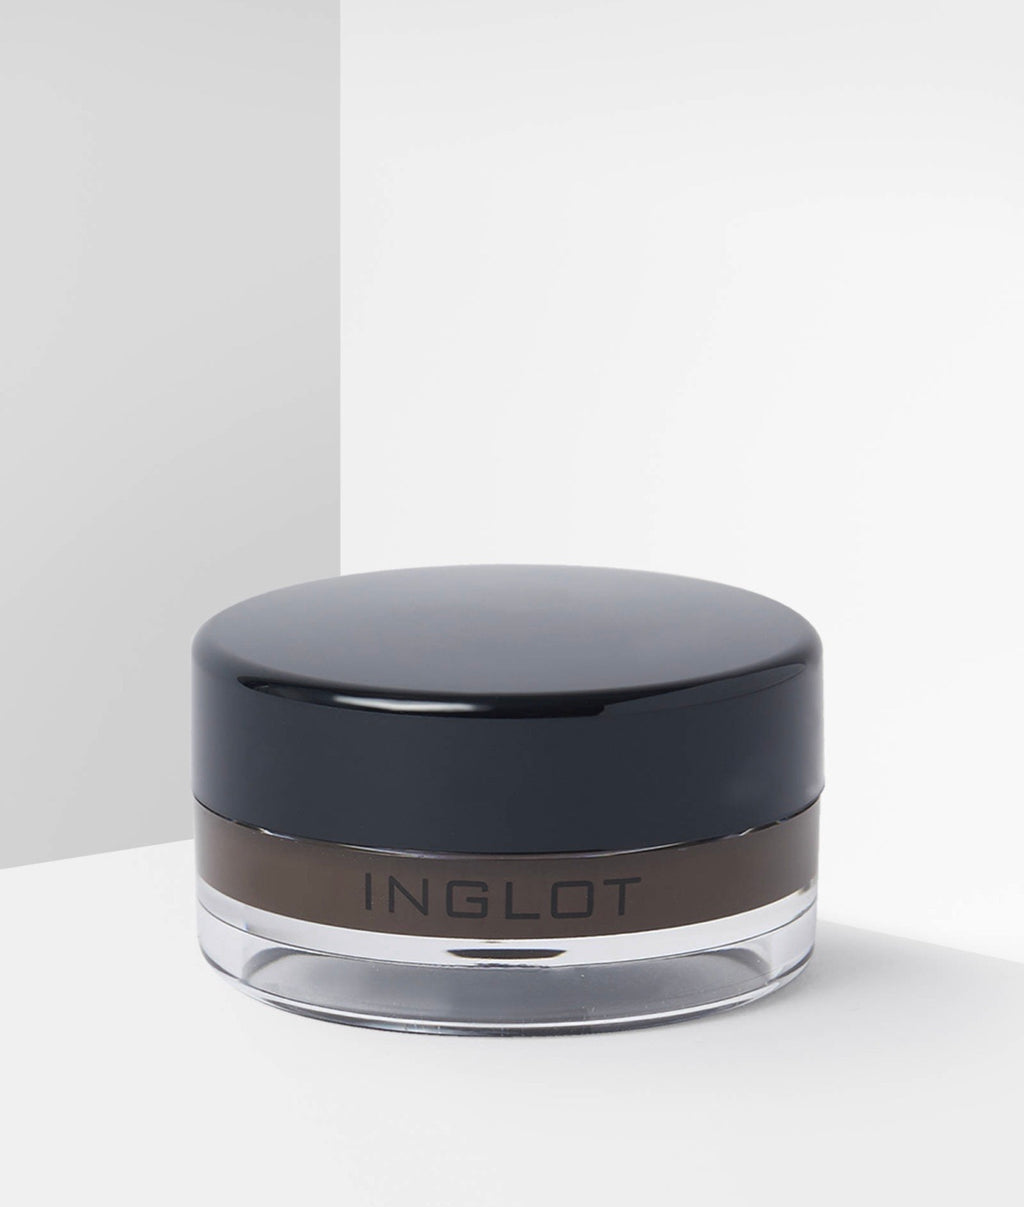 "INGLOT - Delineador Gel ""AMC 90 DEEP BROWN"""